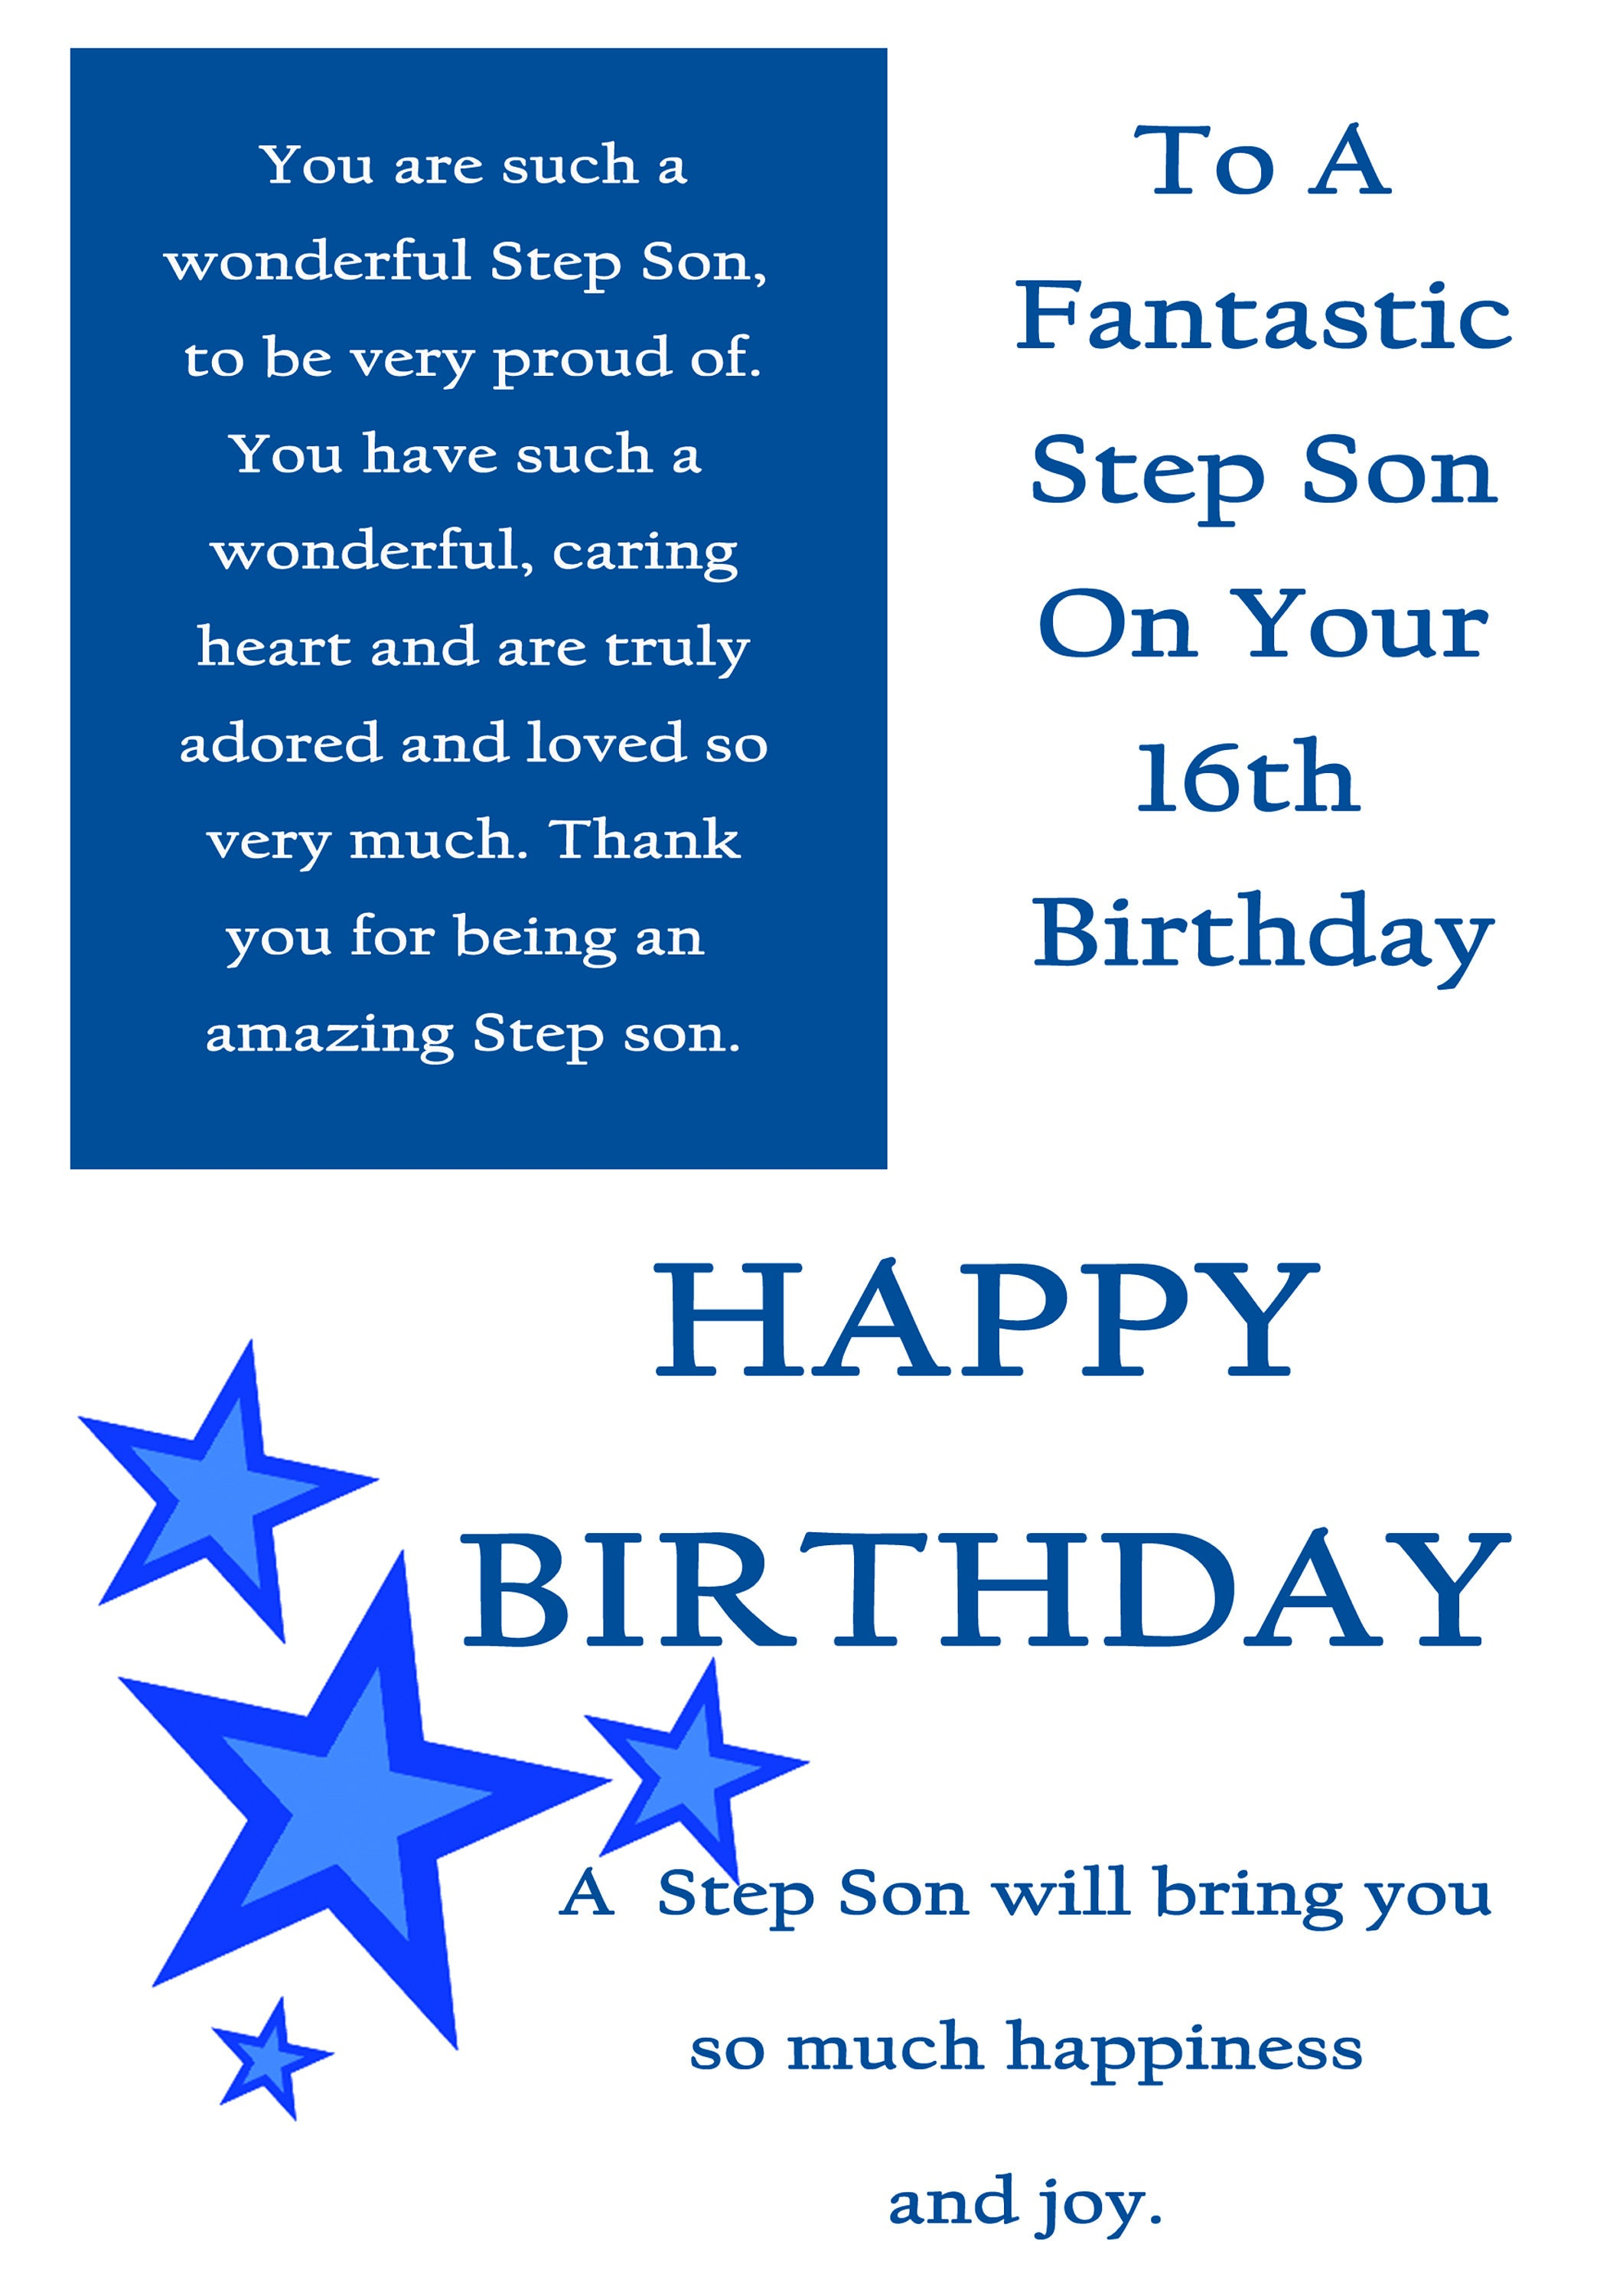 step son 16 birthday card with removable laminate